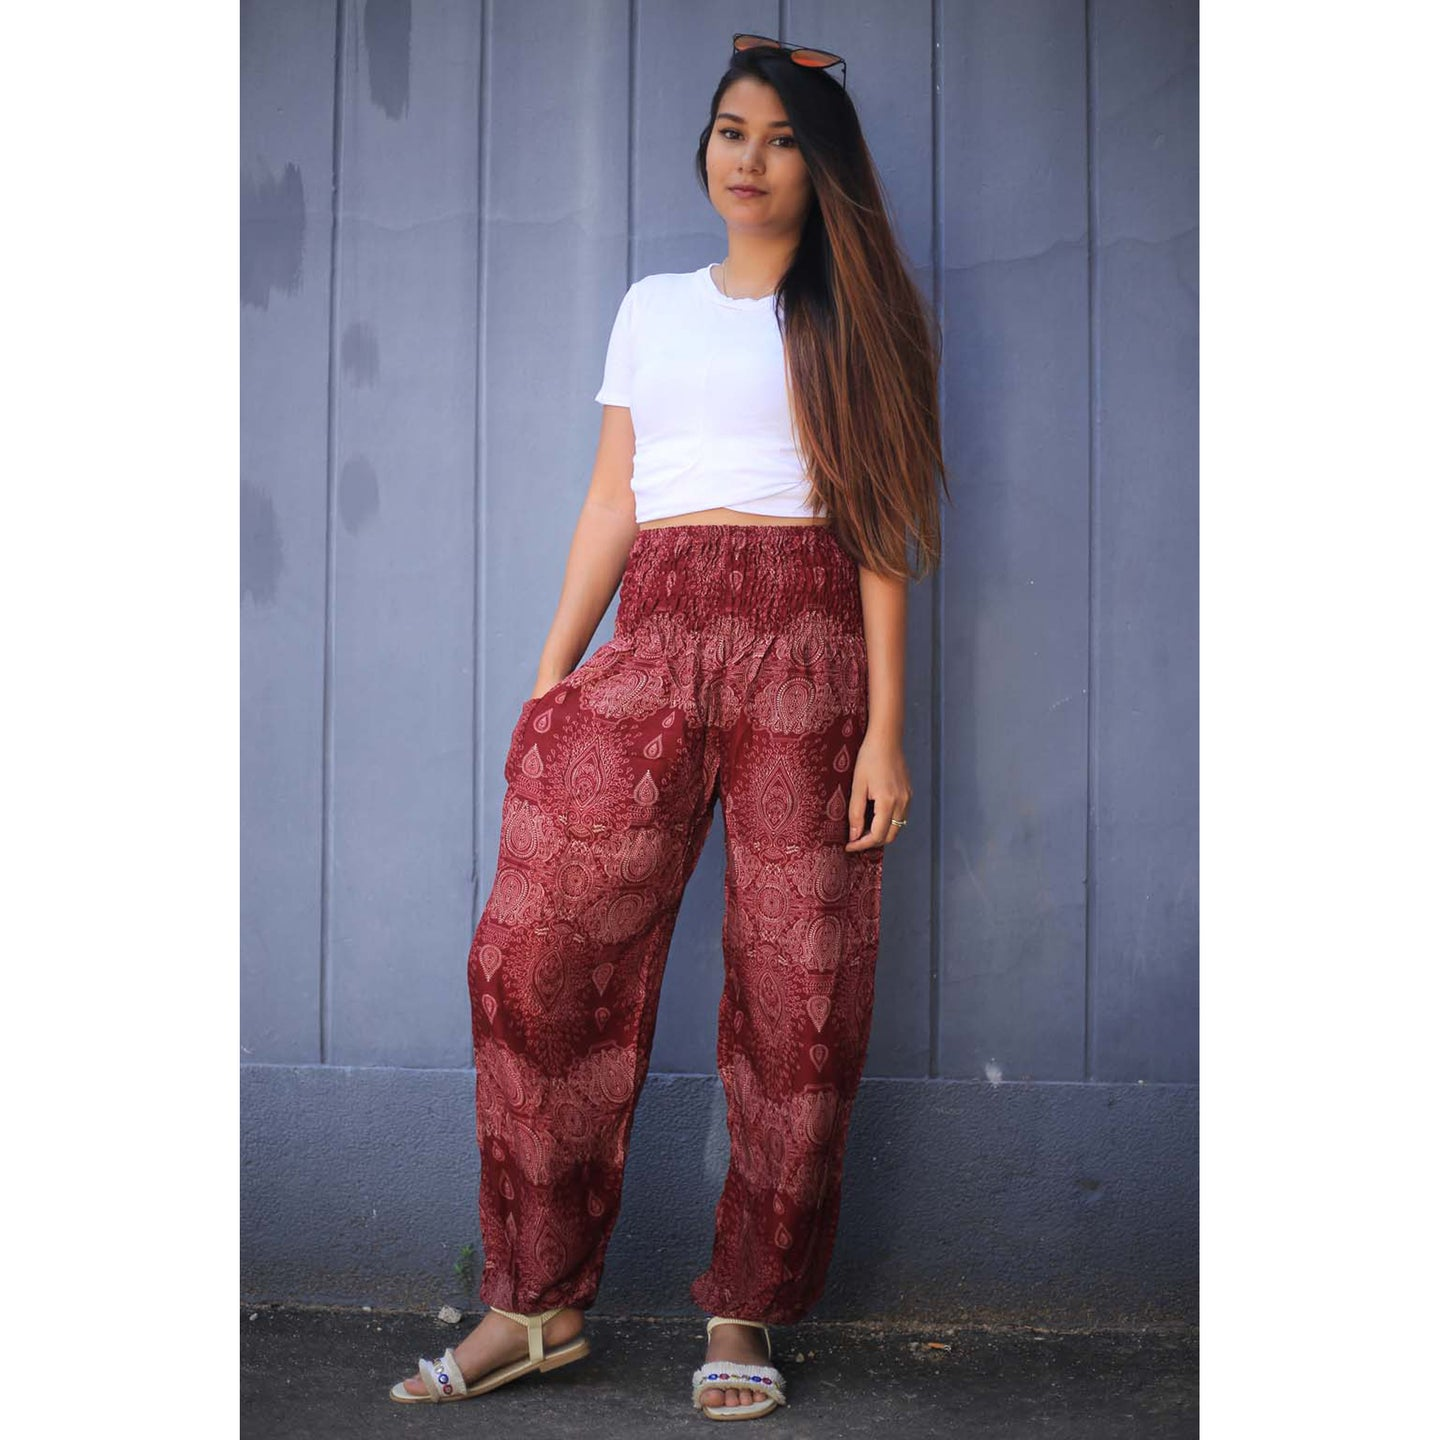 Paisley 133 women harem pants in Red PP0004 020133 01